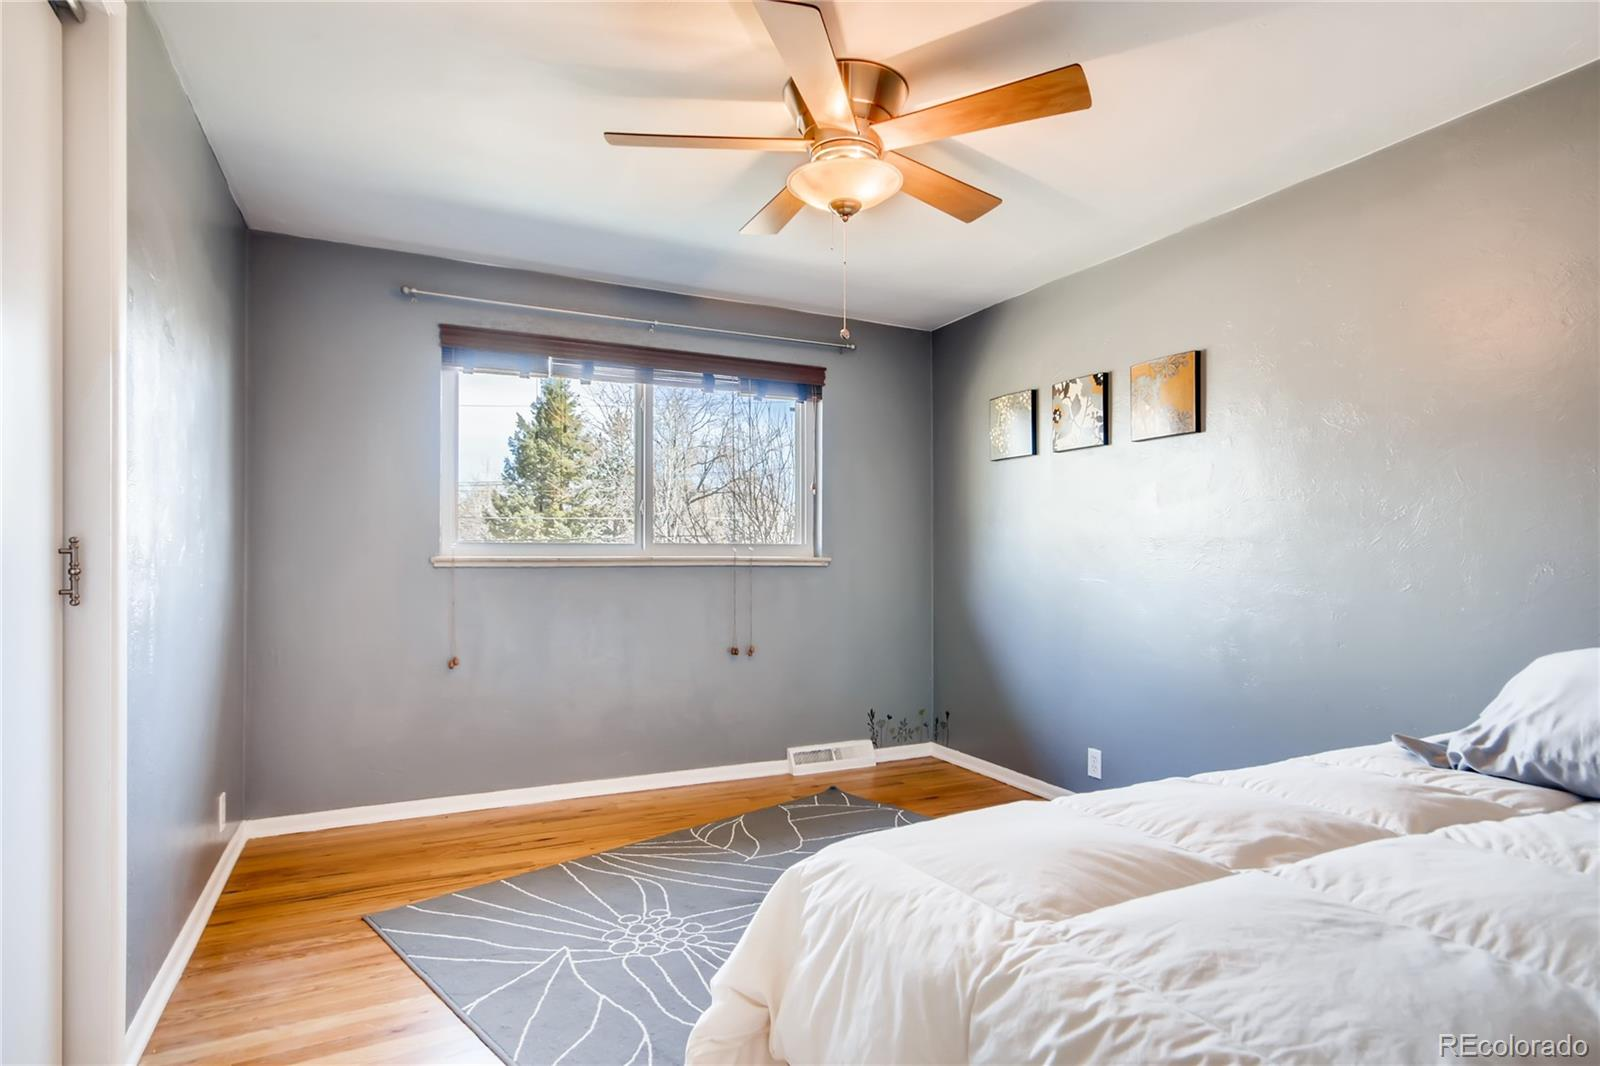 MLS# 9197299 - 20 - 10511 W 22nd Place, Lakewood, CO 80215